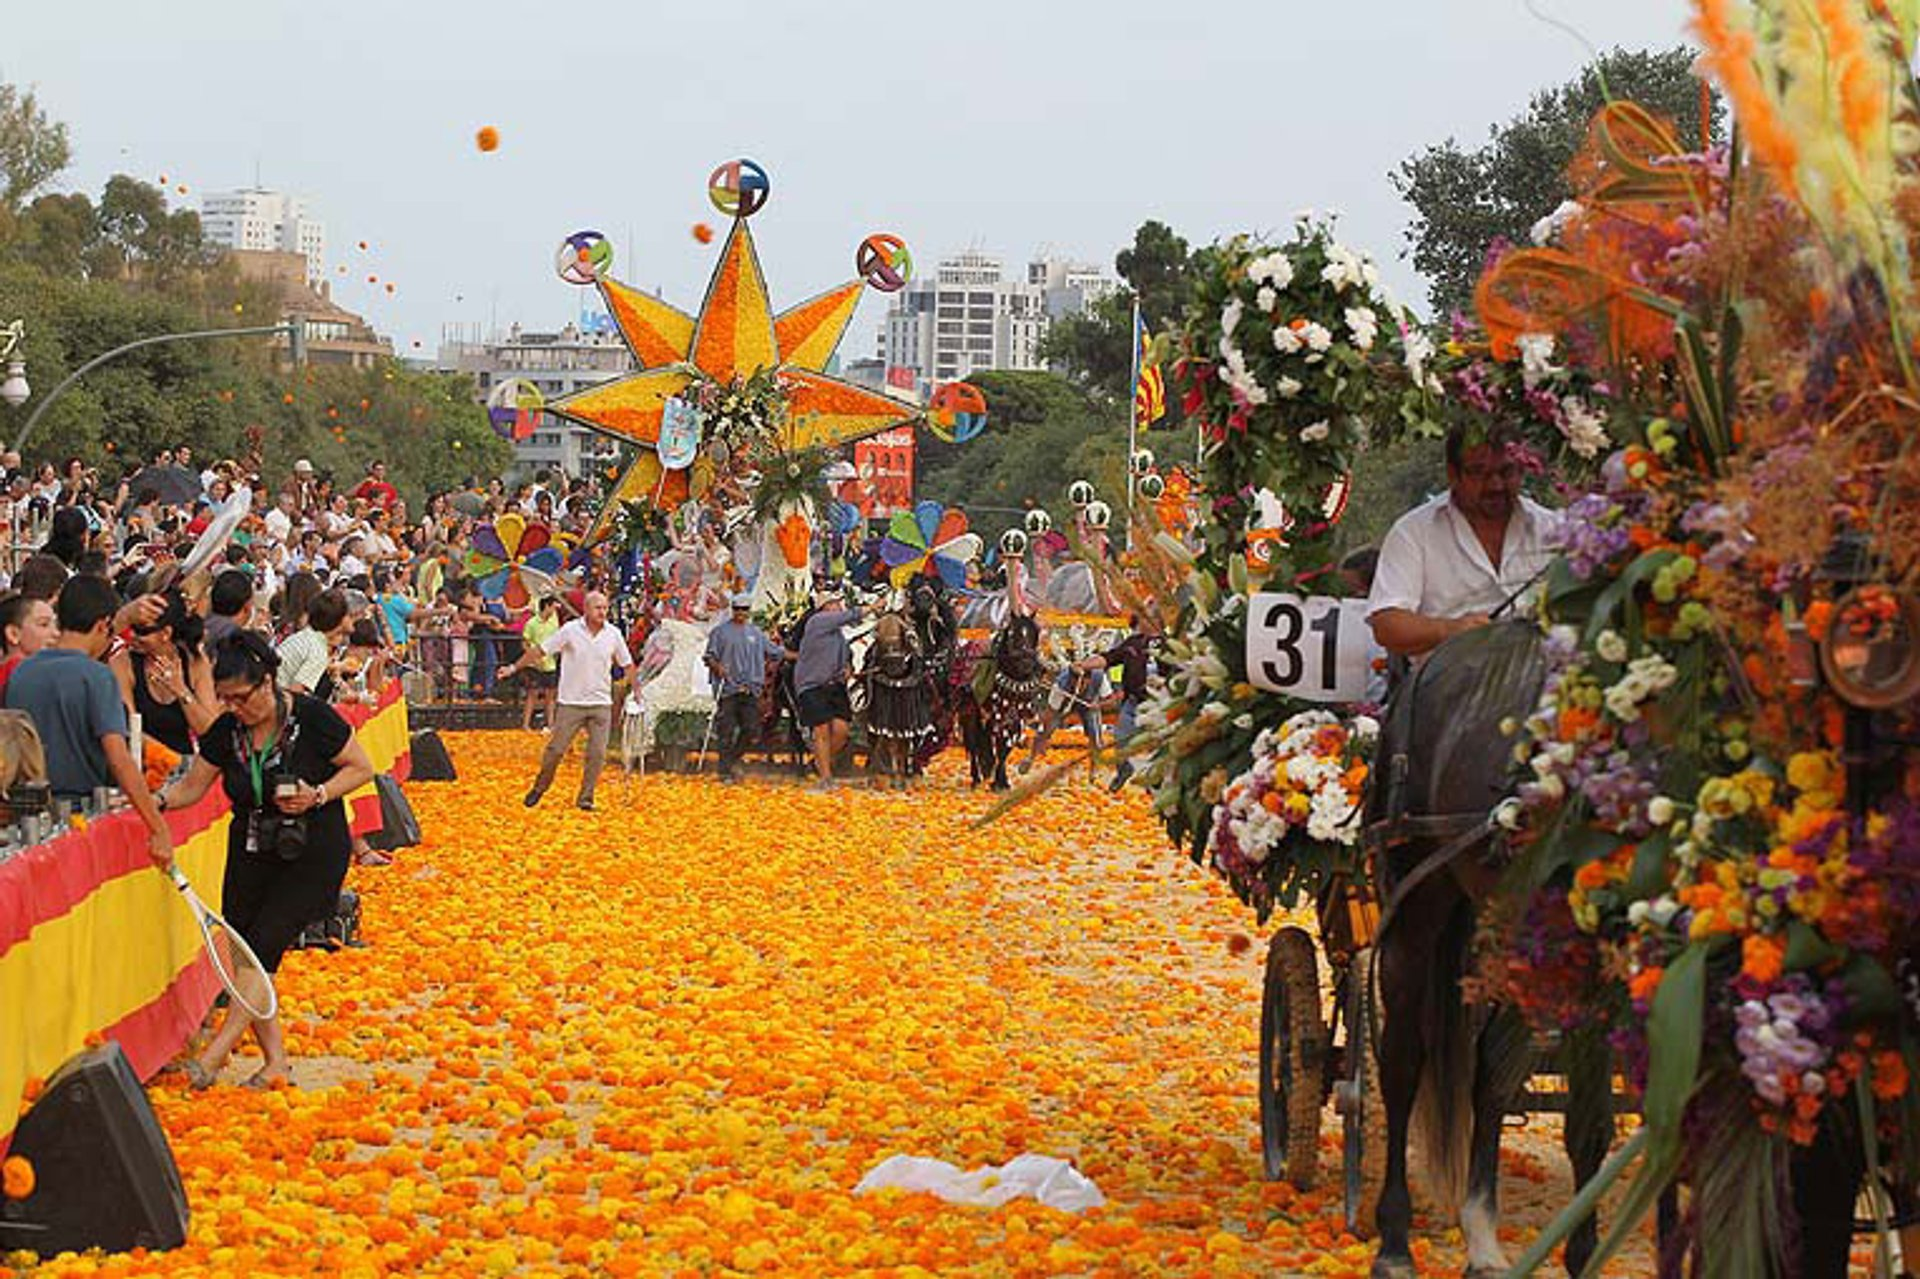 Battle of Flowers in Valencia - Best Season